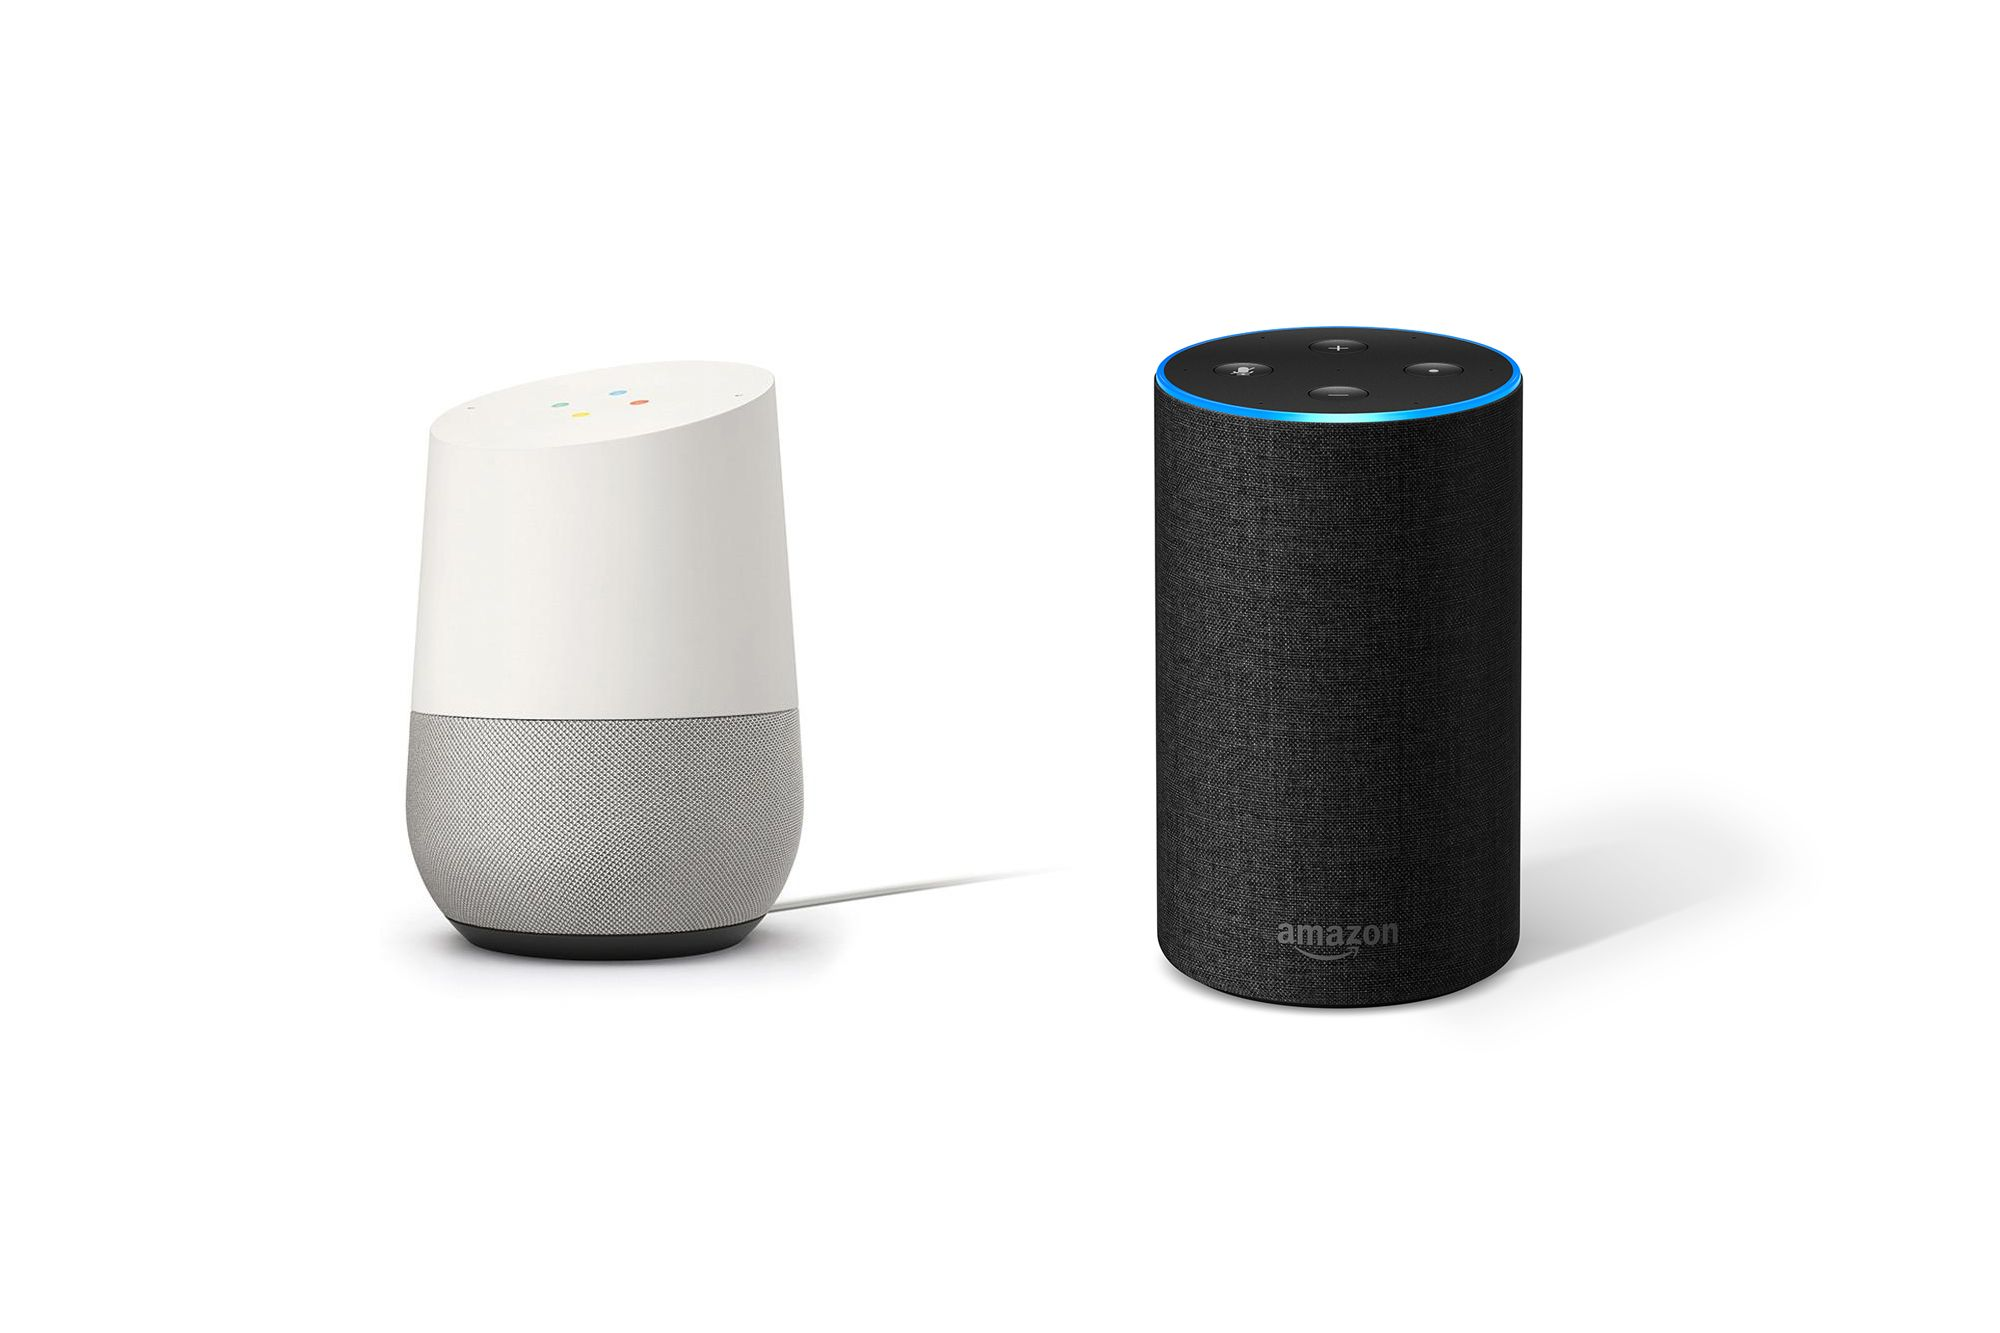 Google Home and Amazon Echo Can Store Your Voice Recordings. Here's When They Could Be Used Against You.